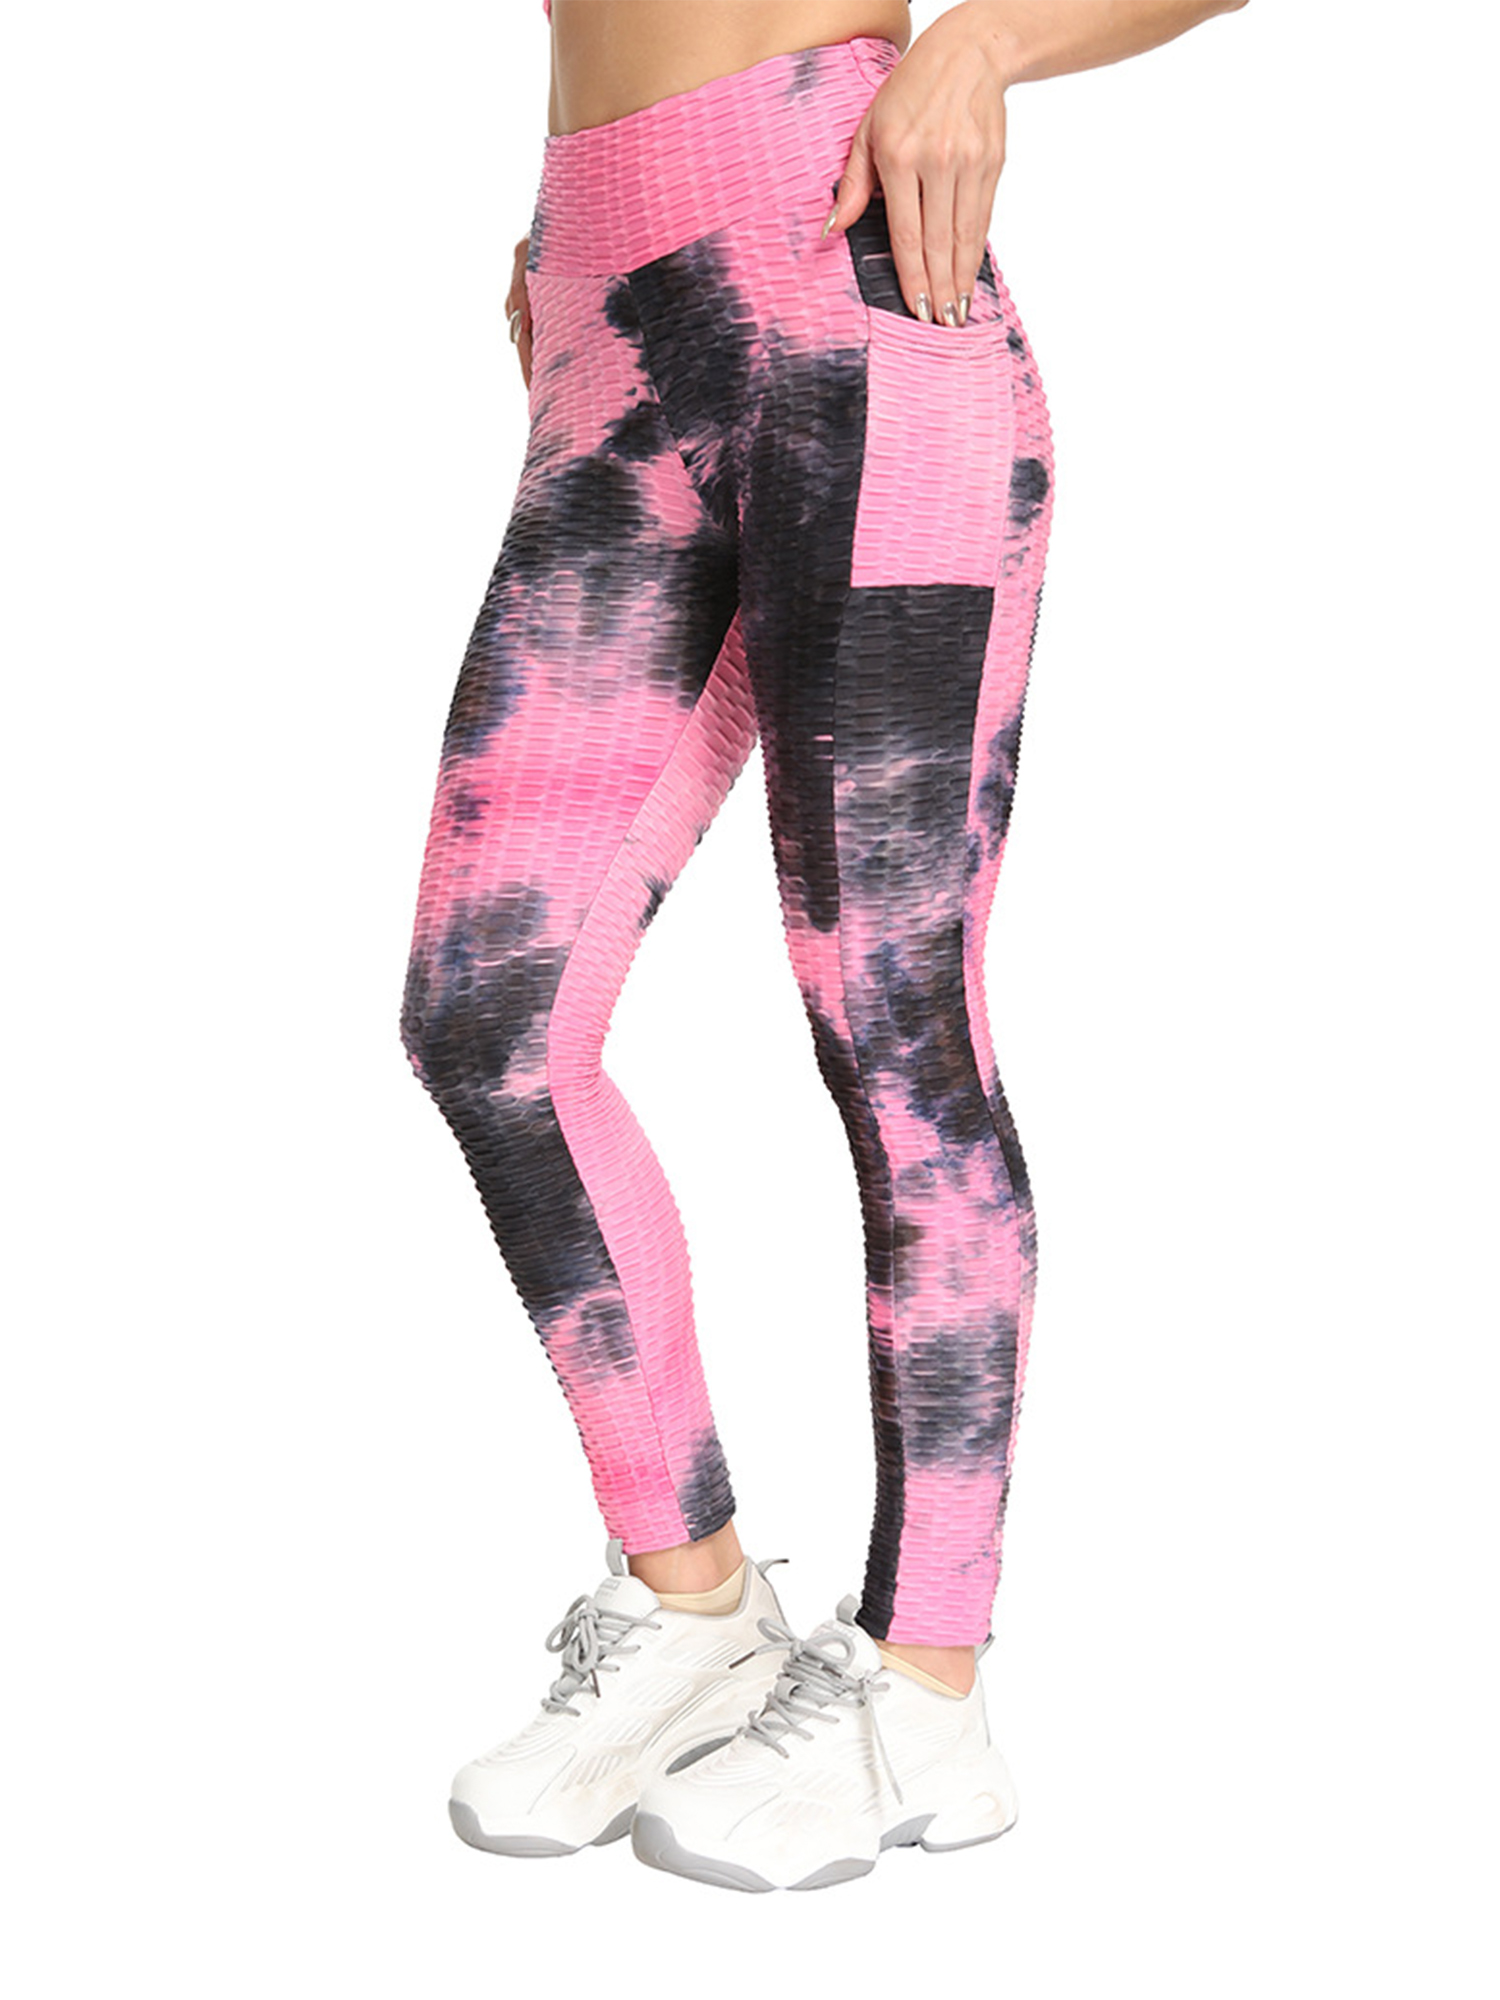 Details about  /Women Push Up Yoga Pants Anti Cellulite Leggings Ruched Sport Honeycomb Trousers